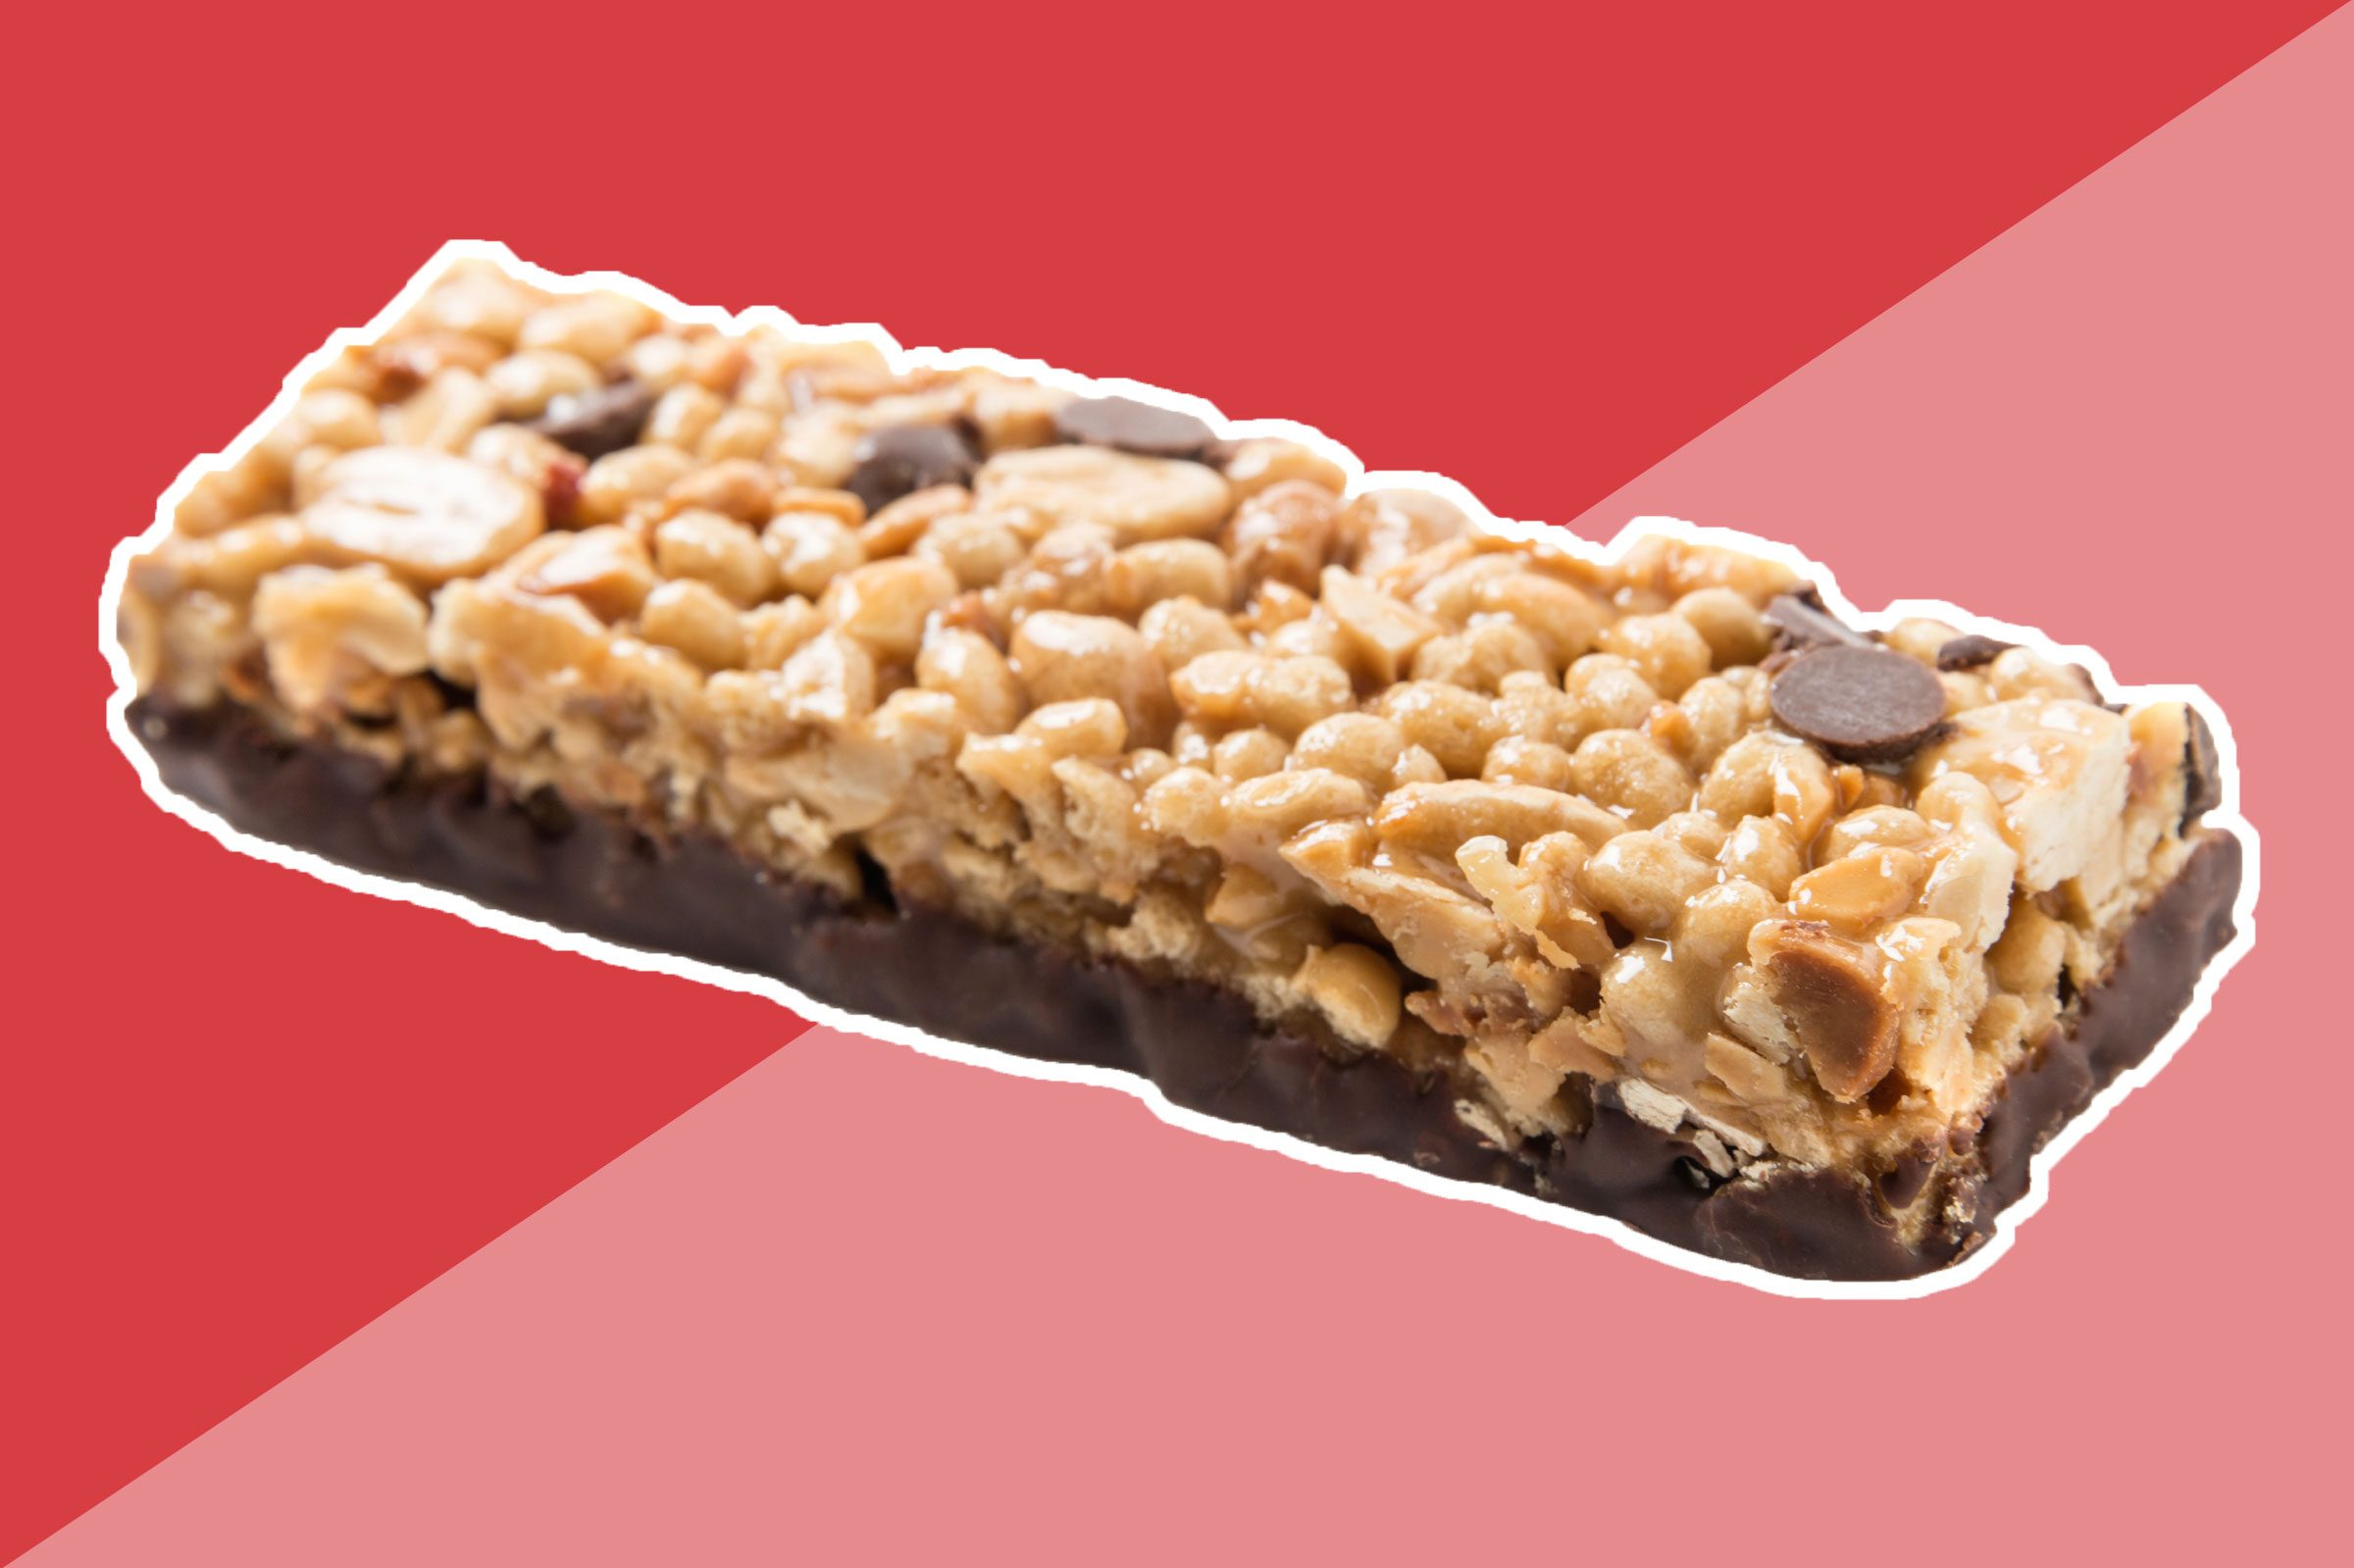 Energy or protein bars